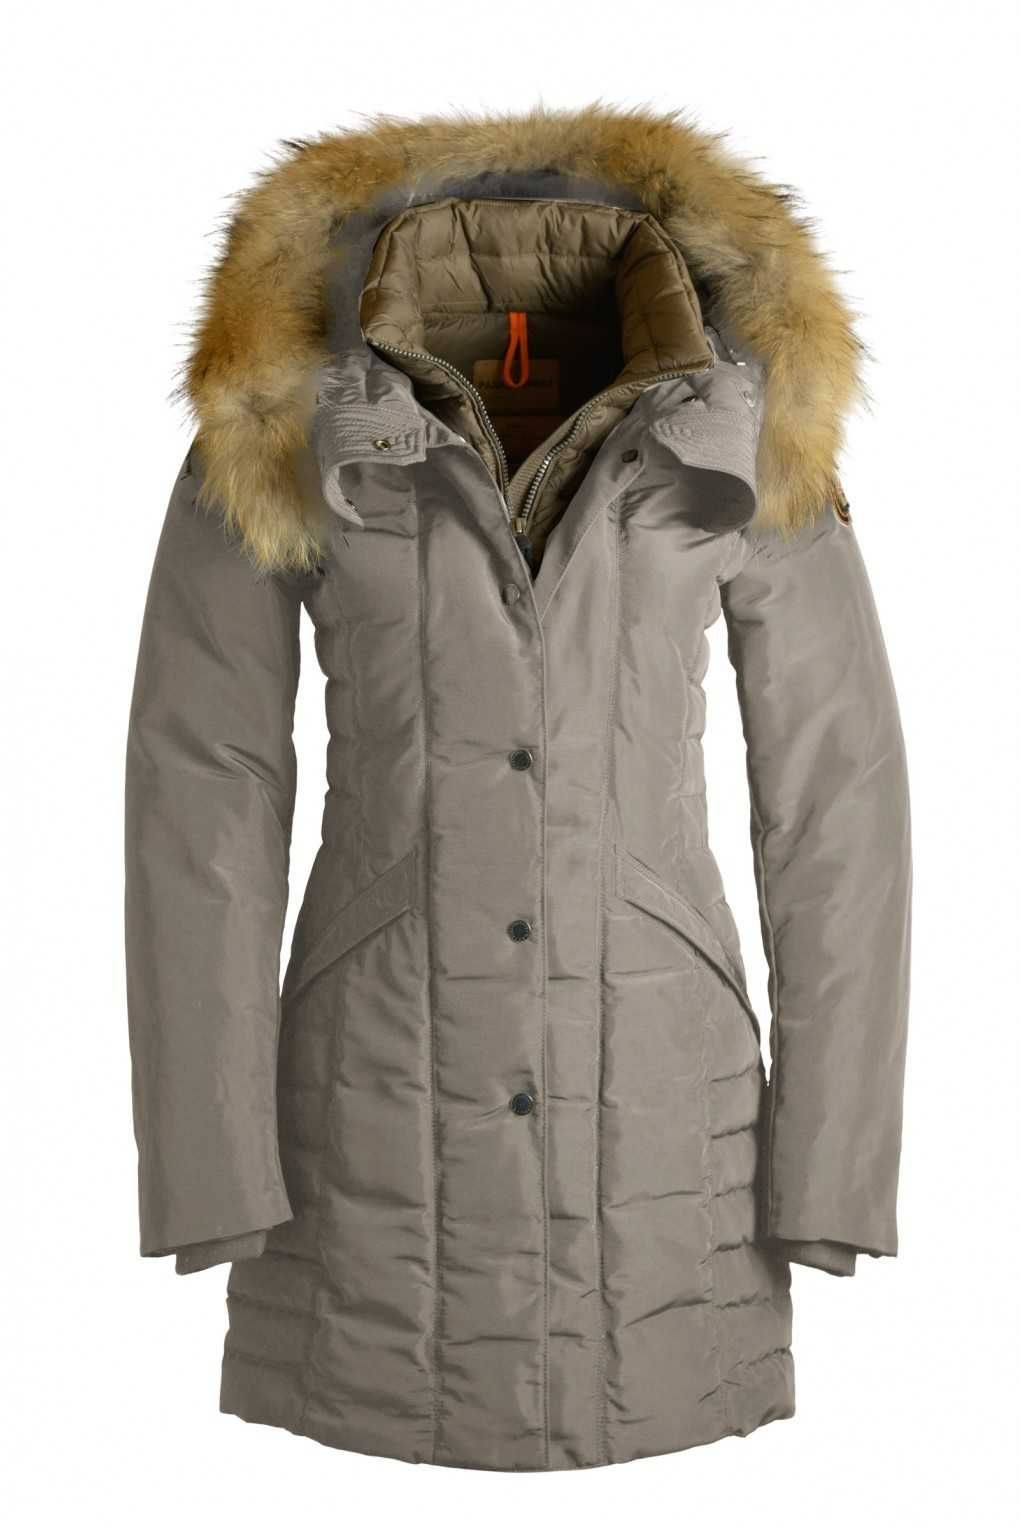 Parajumper Long Bear - Shop Discount Parajumpers Jackets Sale,Parajumpers Down Parkas And Parajumpers Outlet Uk for Women,Men And High Quality Guarantee! a ...